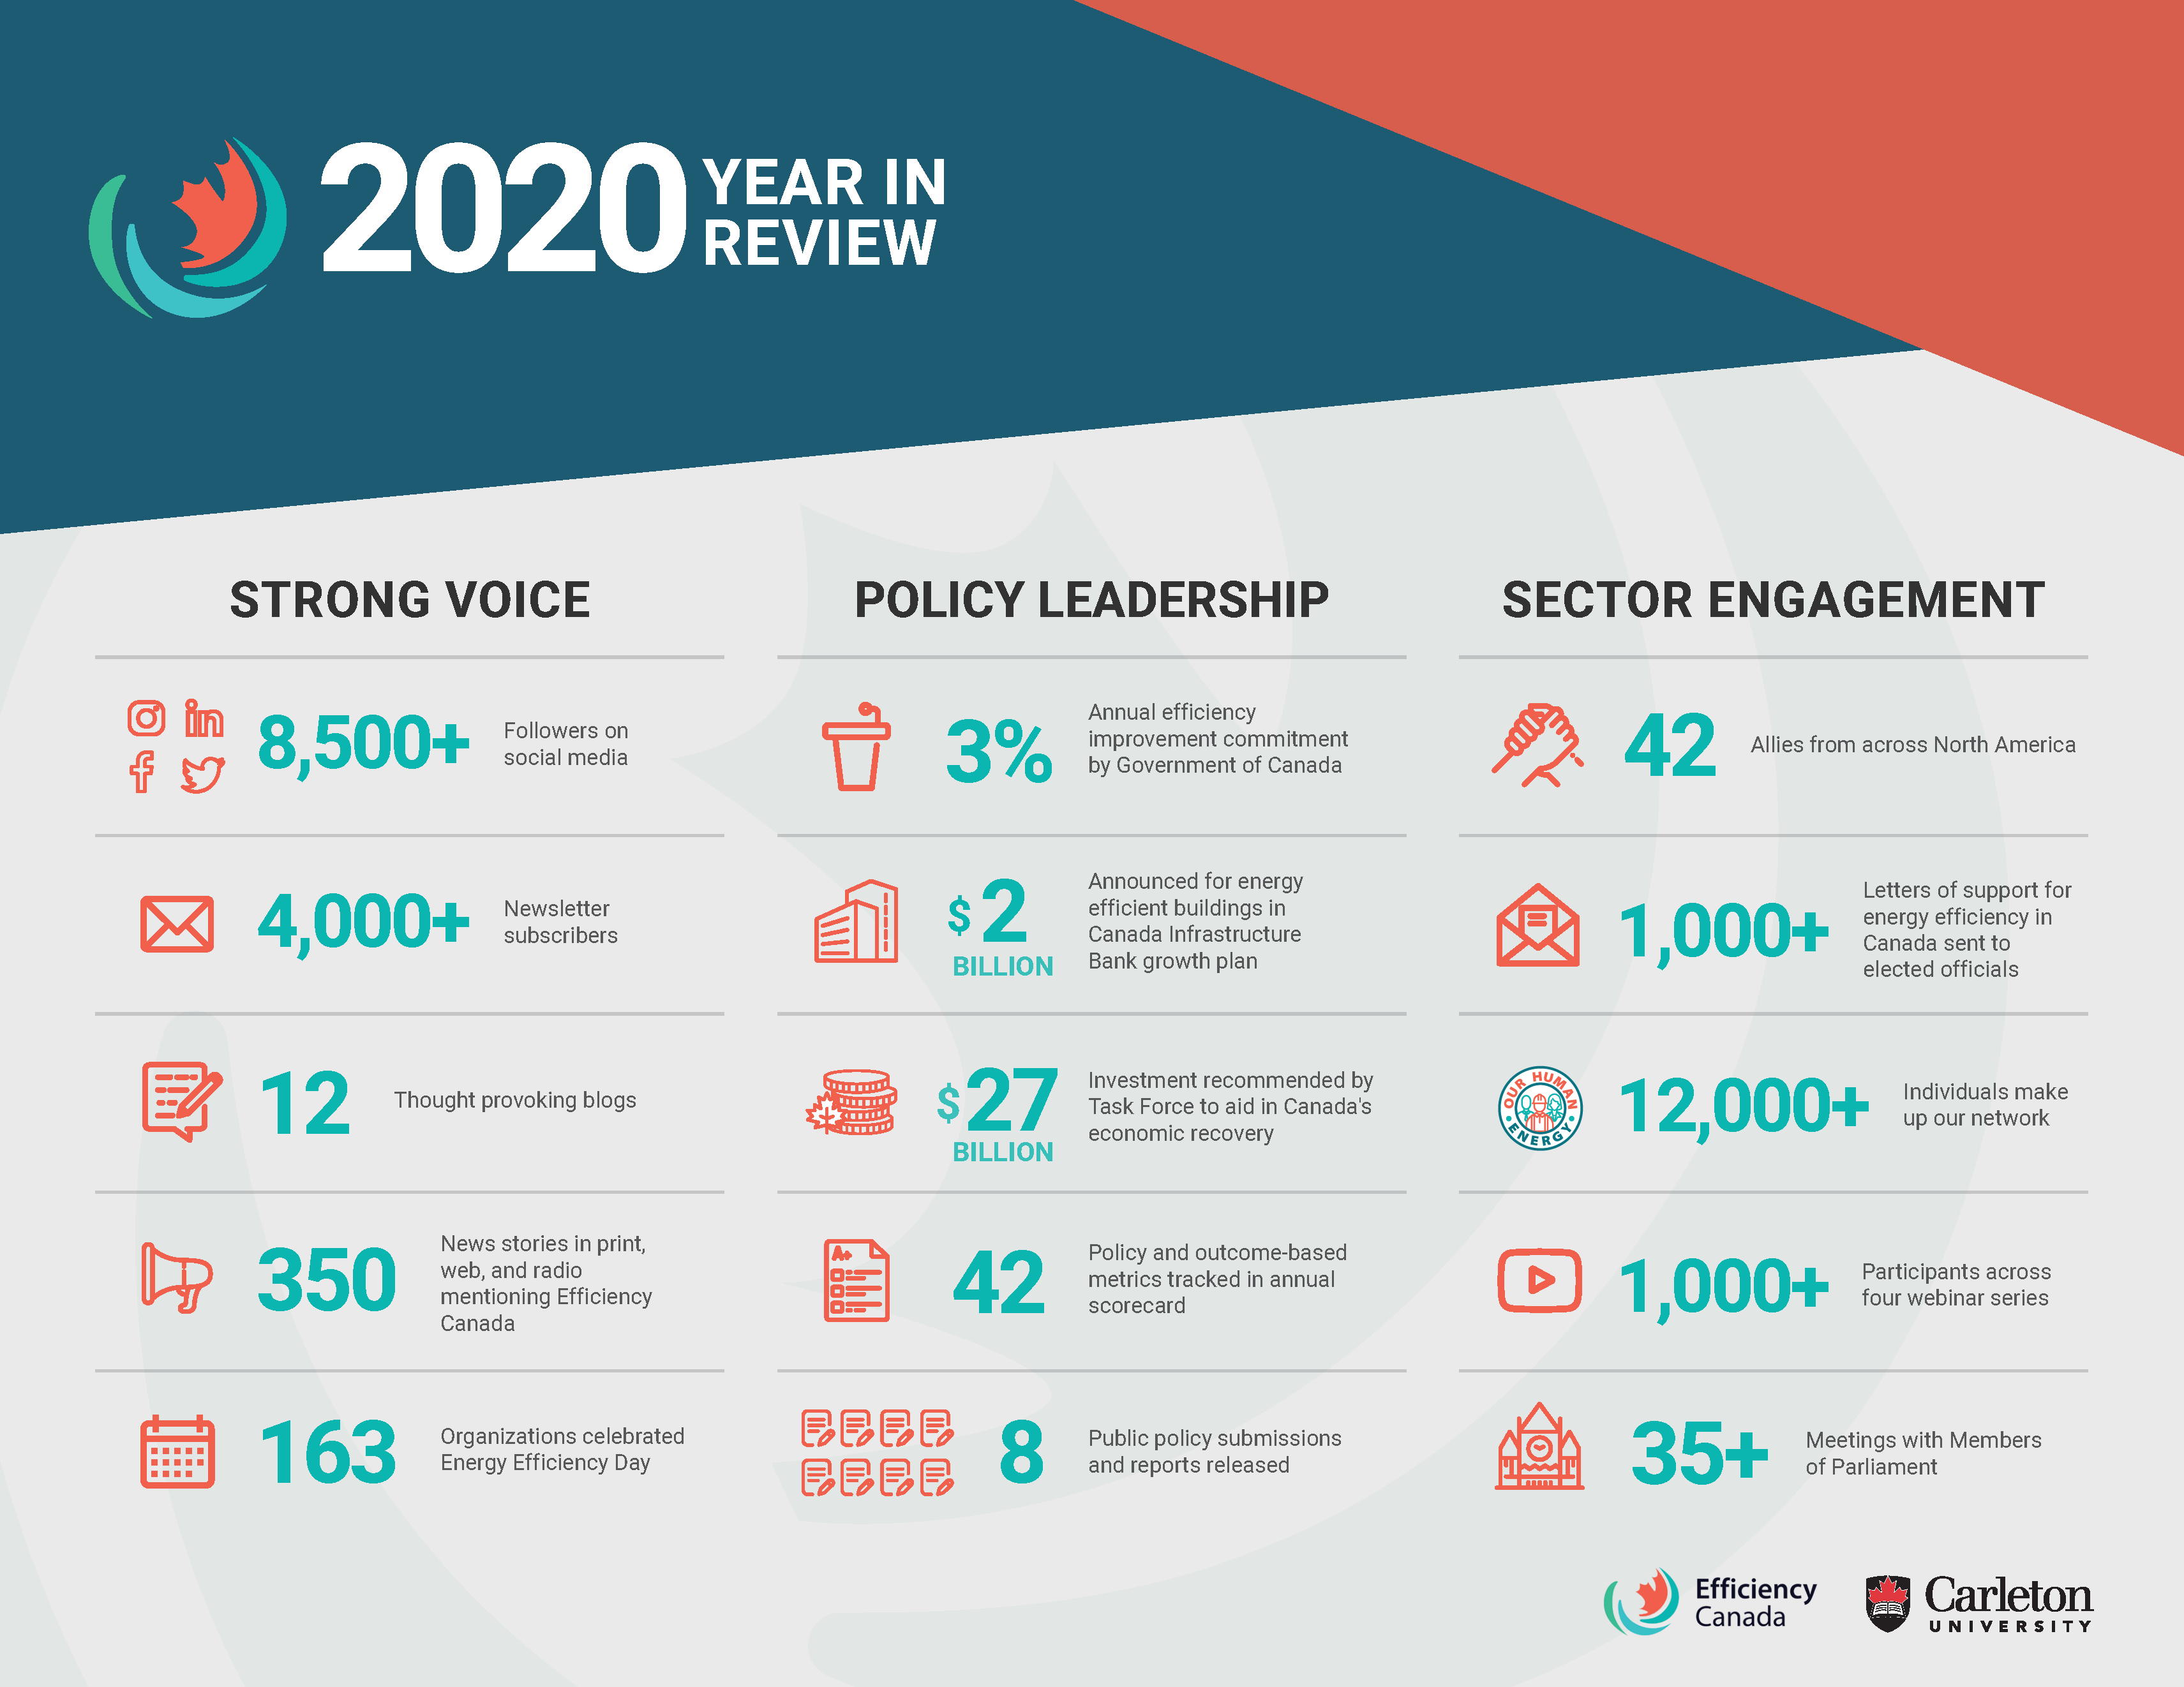 2020 Year in Review Infographic